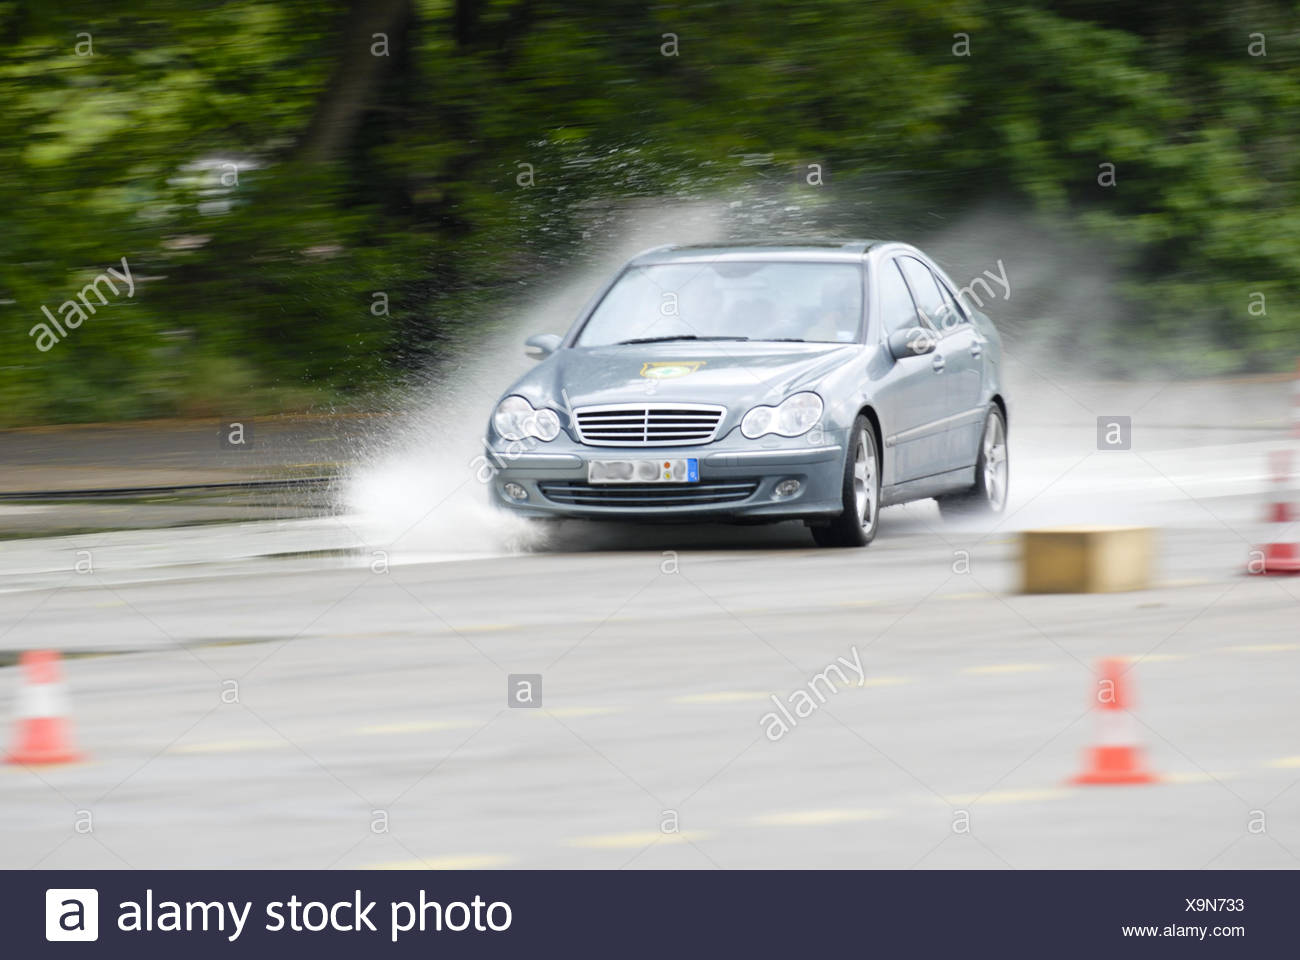 Safety training for drivers Stock Photo